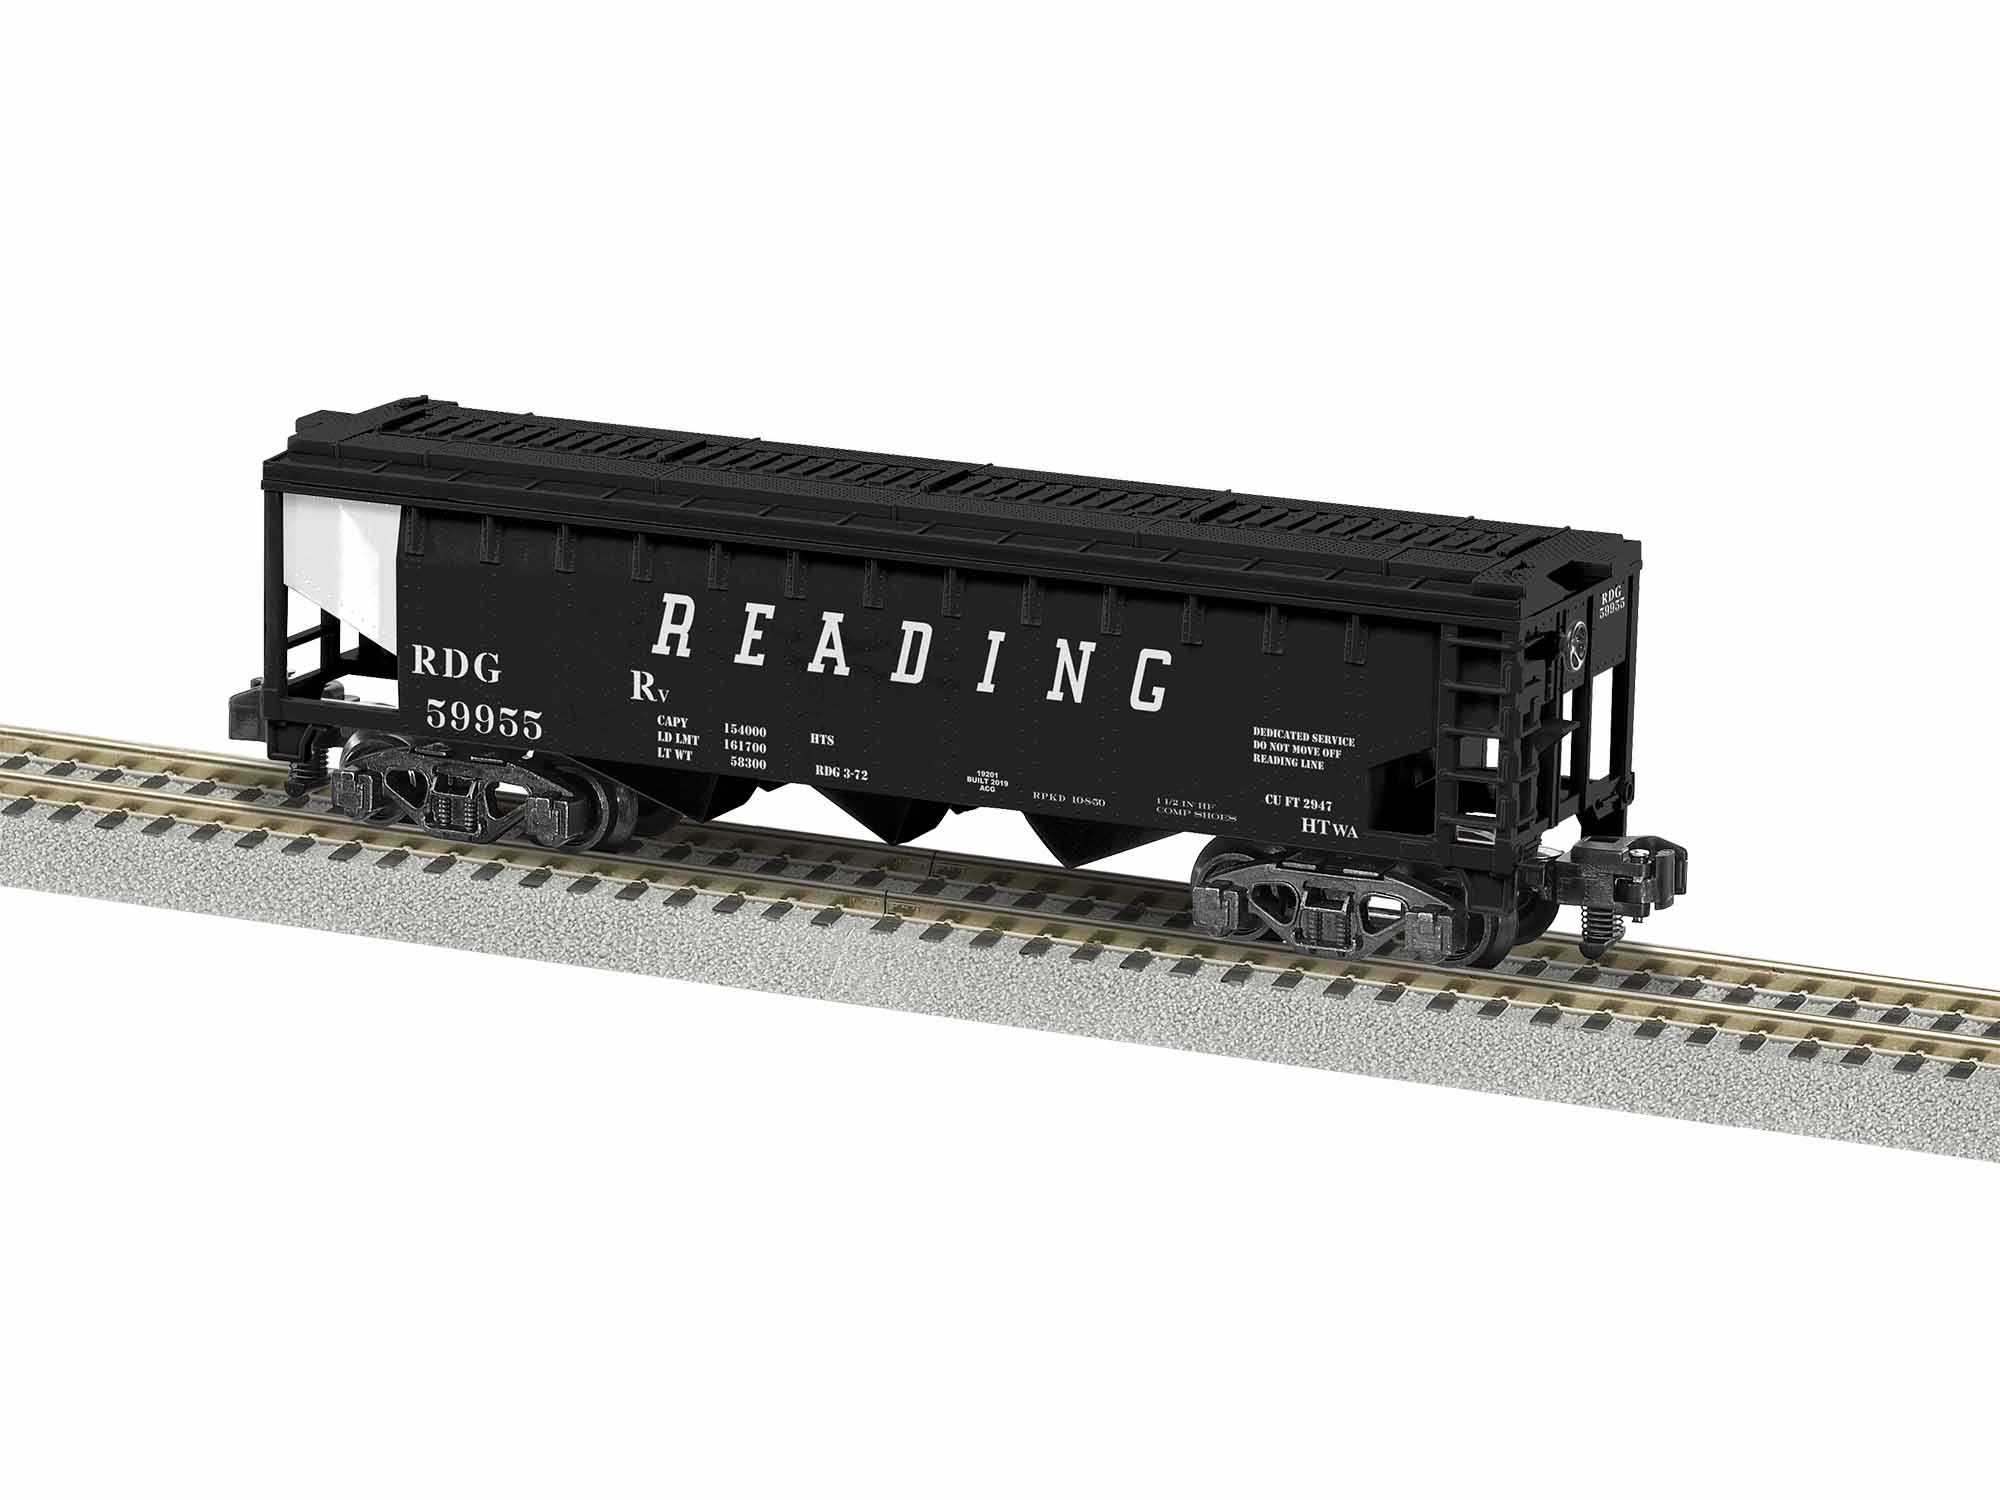 LNL1919201 Lionel S AF 3 Bay Covered Hopper, RDG #59955 434-1919201